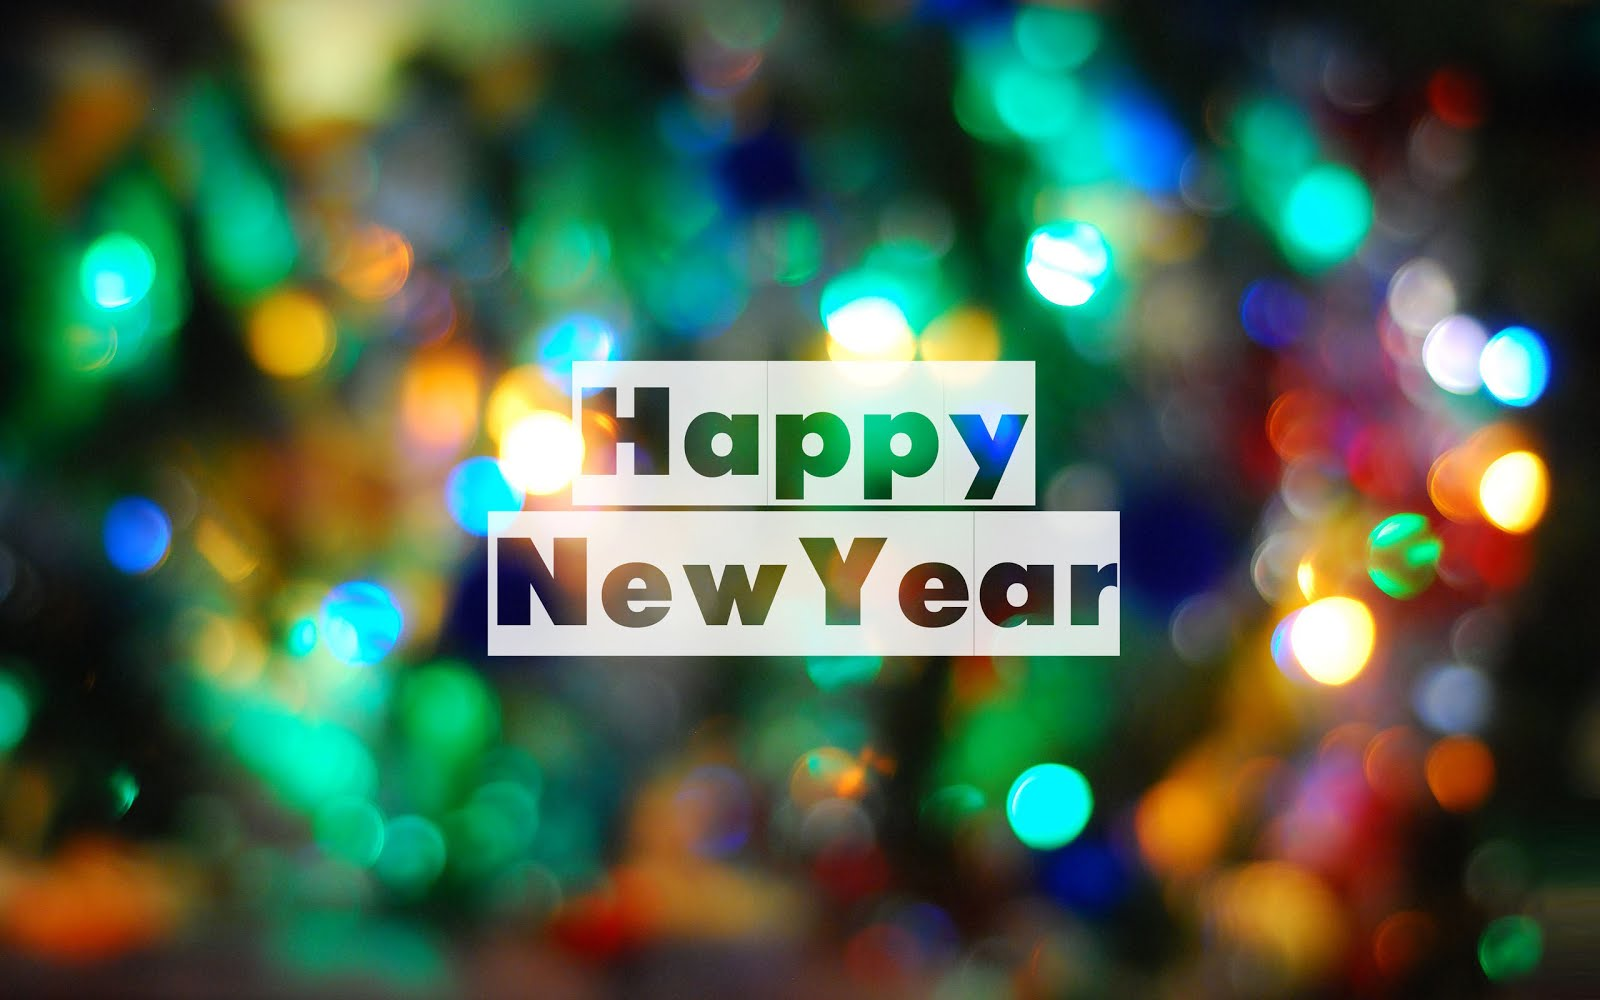 Happy New Year 2016 Hd Images For Tumblr Download Dreamzandclouds